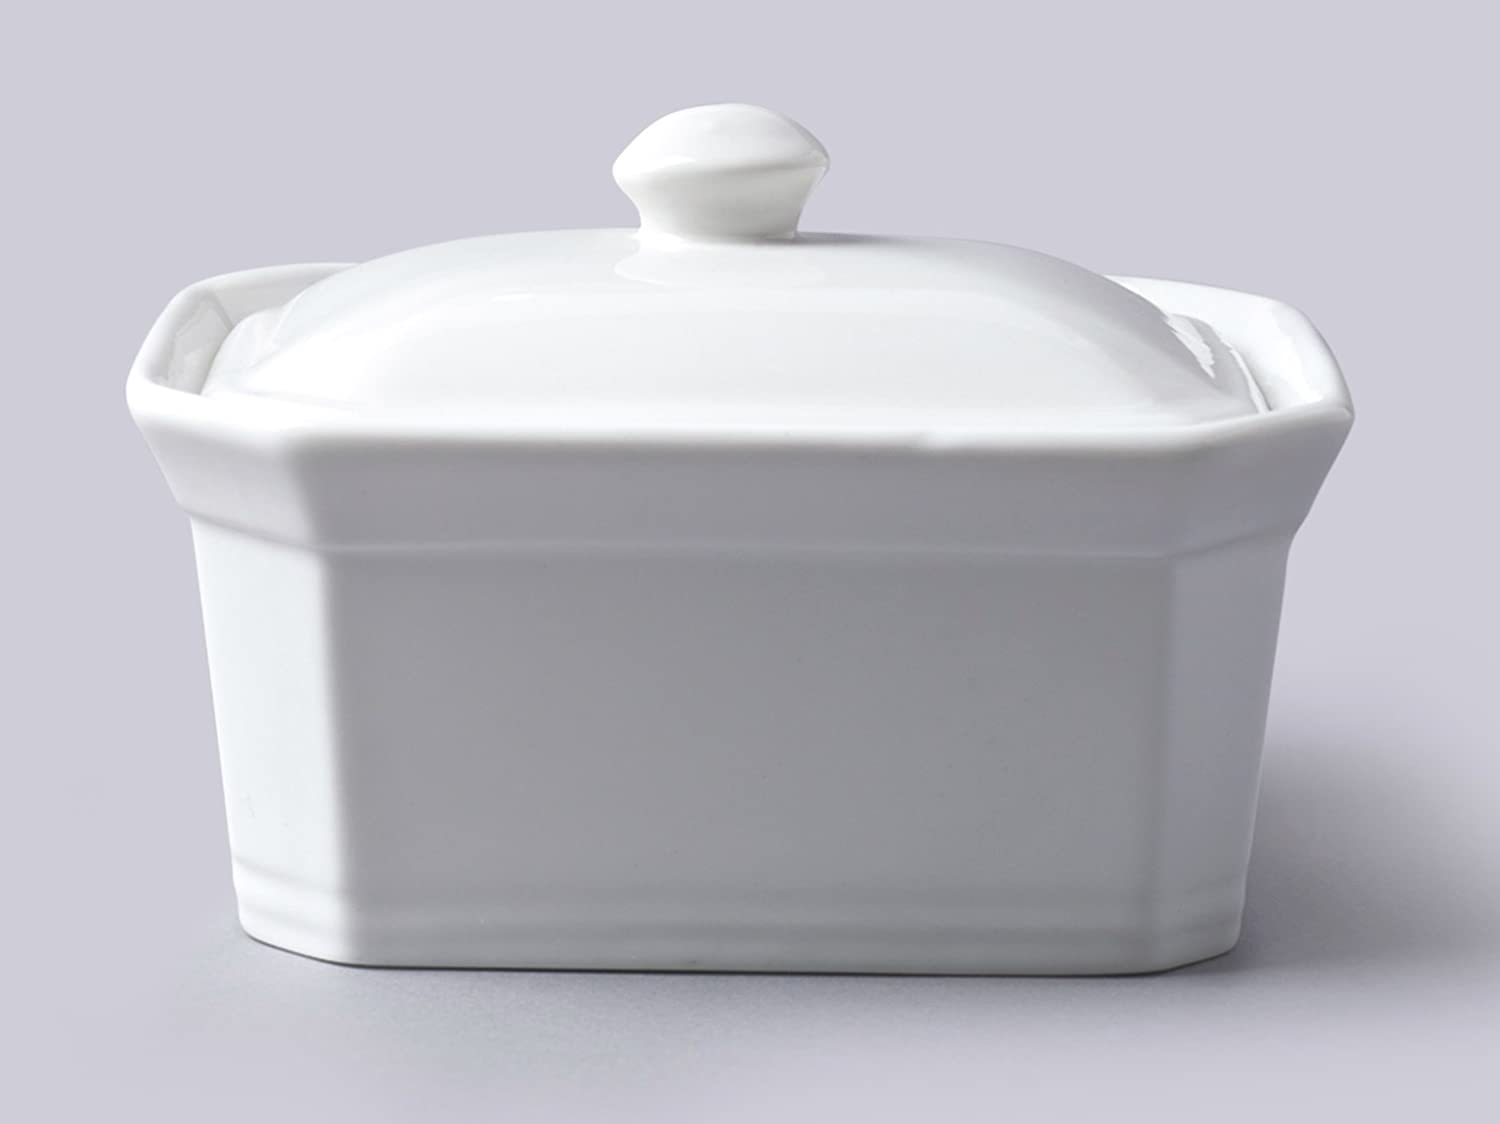 Butter/Terrine Dish with Lid (15x7x12cm) - White Ceramic CKS T153